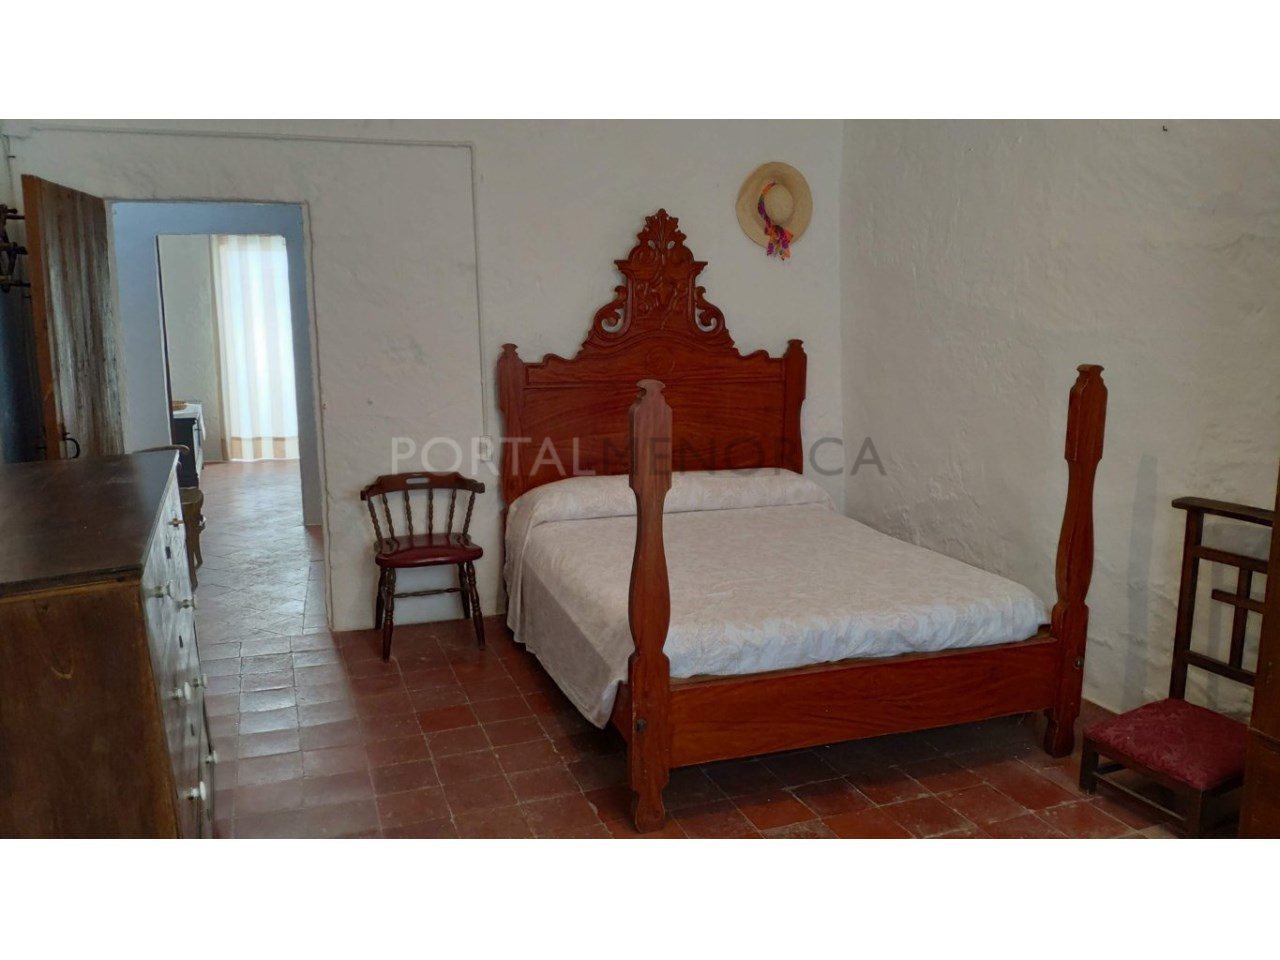 House for sale in the old town of Ciutadella-porch